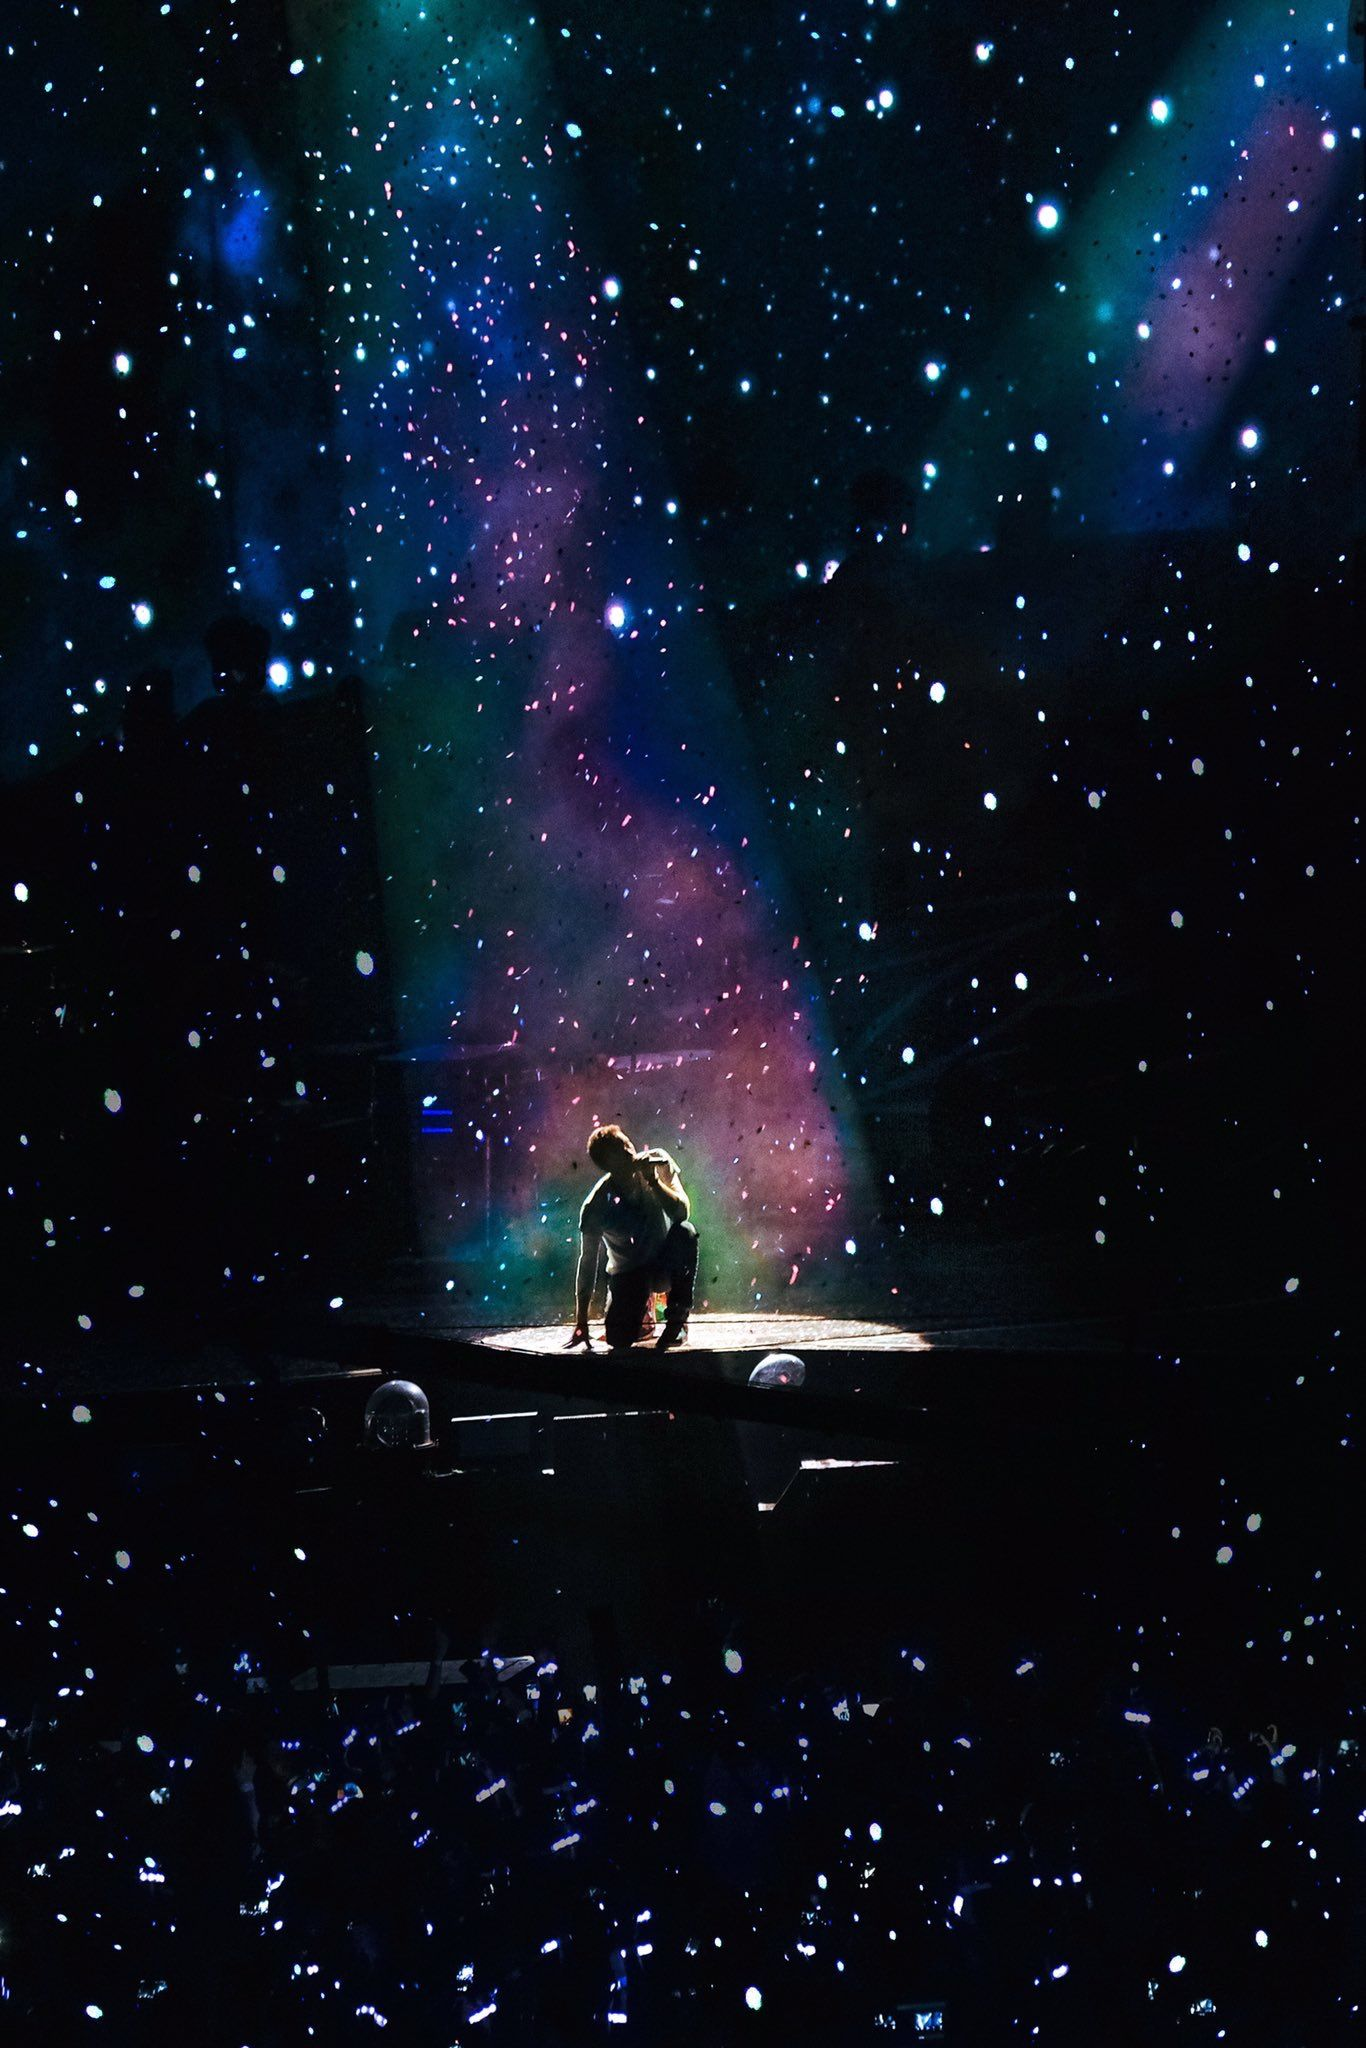 Bmth Wallpaper Iphone Chris Martin And A Sky Full Of Stars Xylobands Coldplay